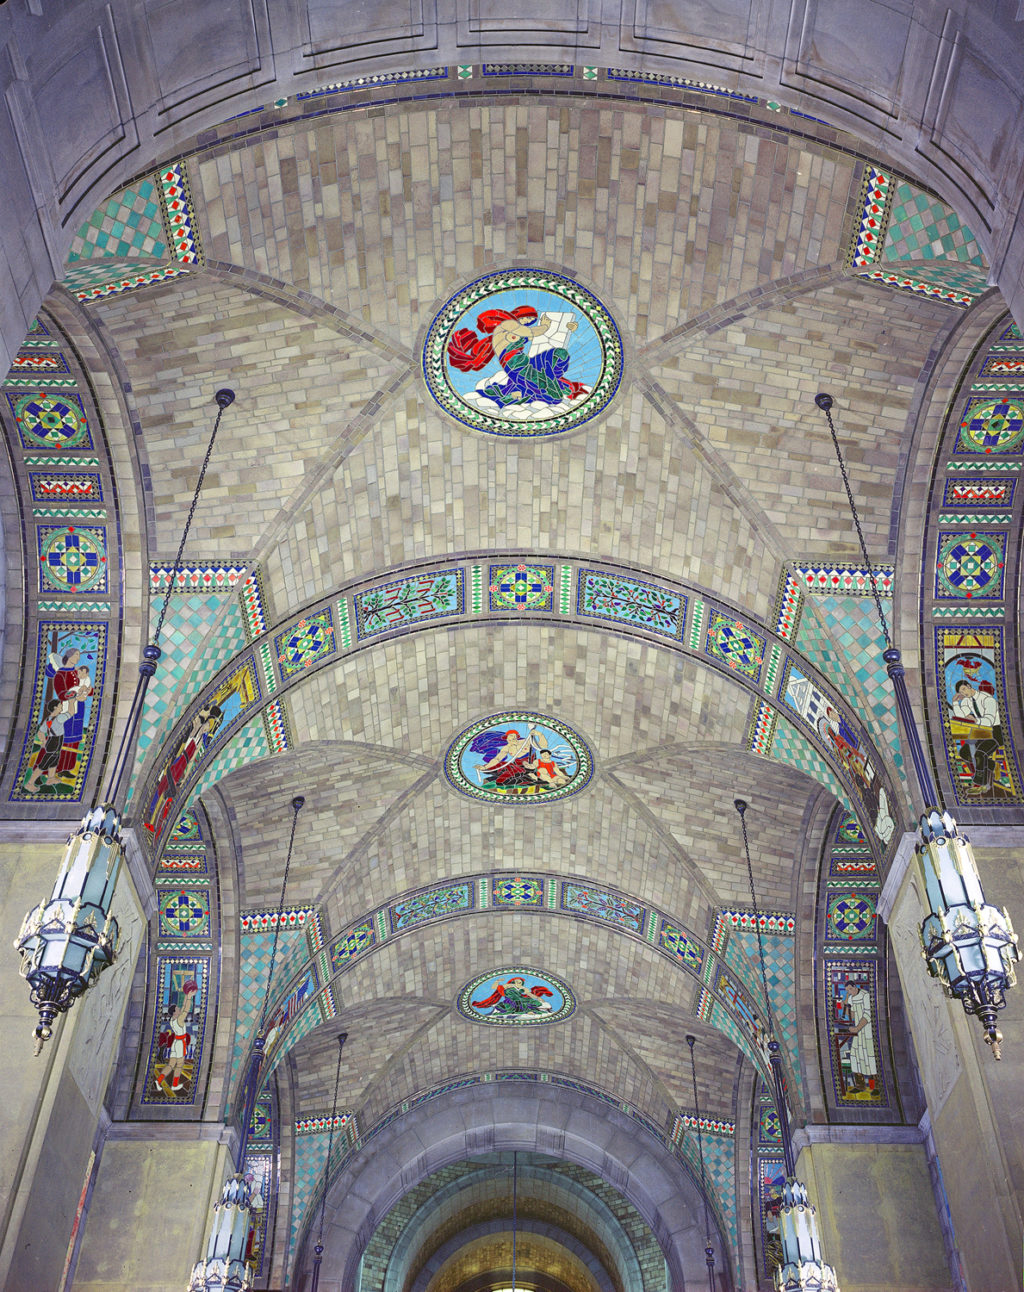 The foyer ceiling with mosaics of the activities of society.